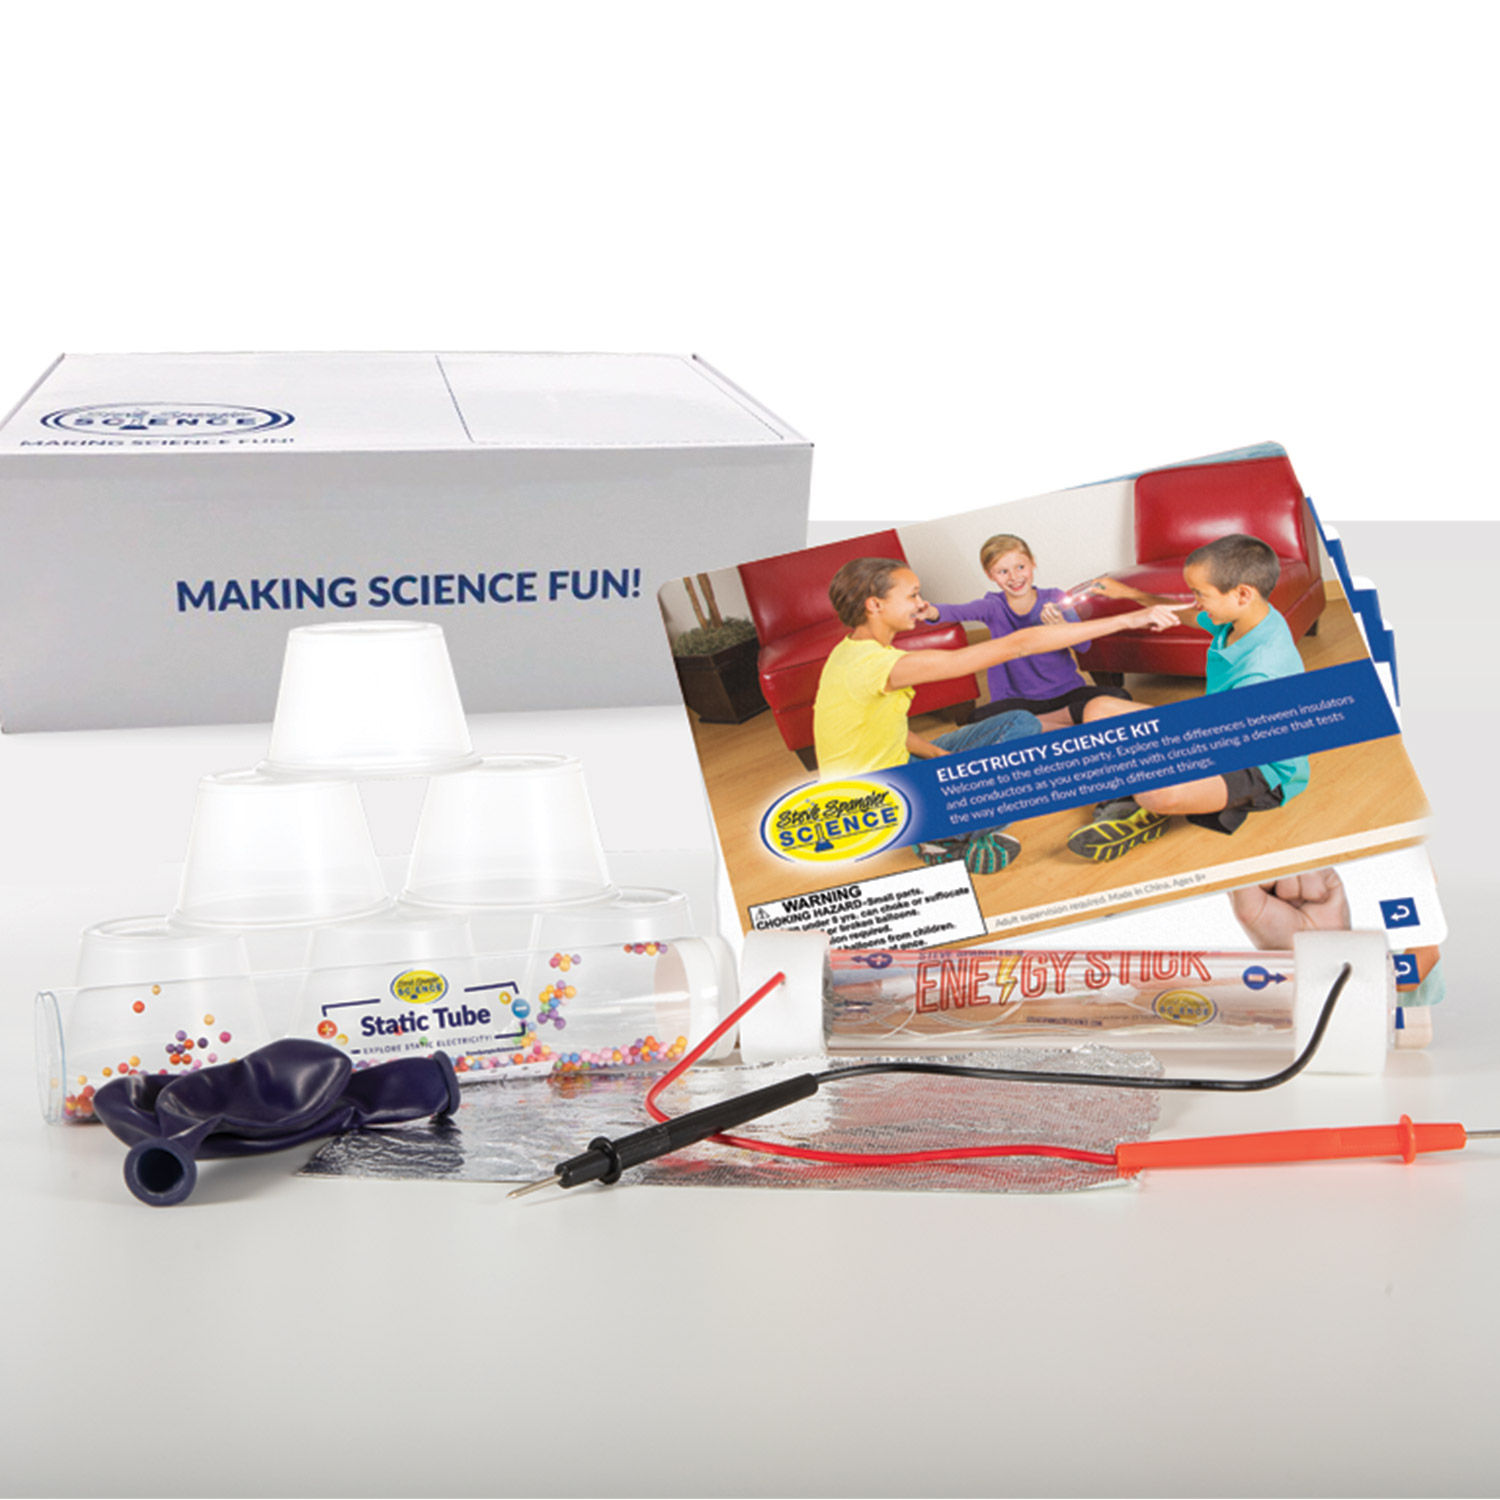 STEM Science Kit – Electricity Science Kit